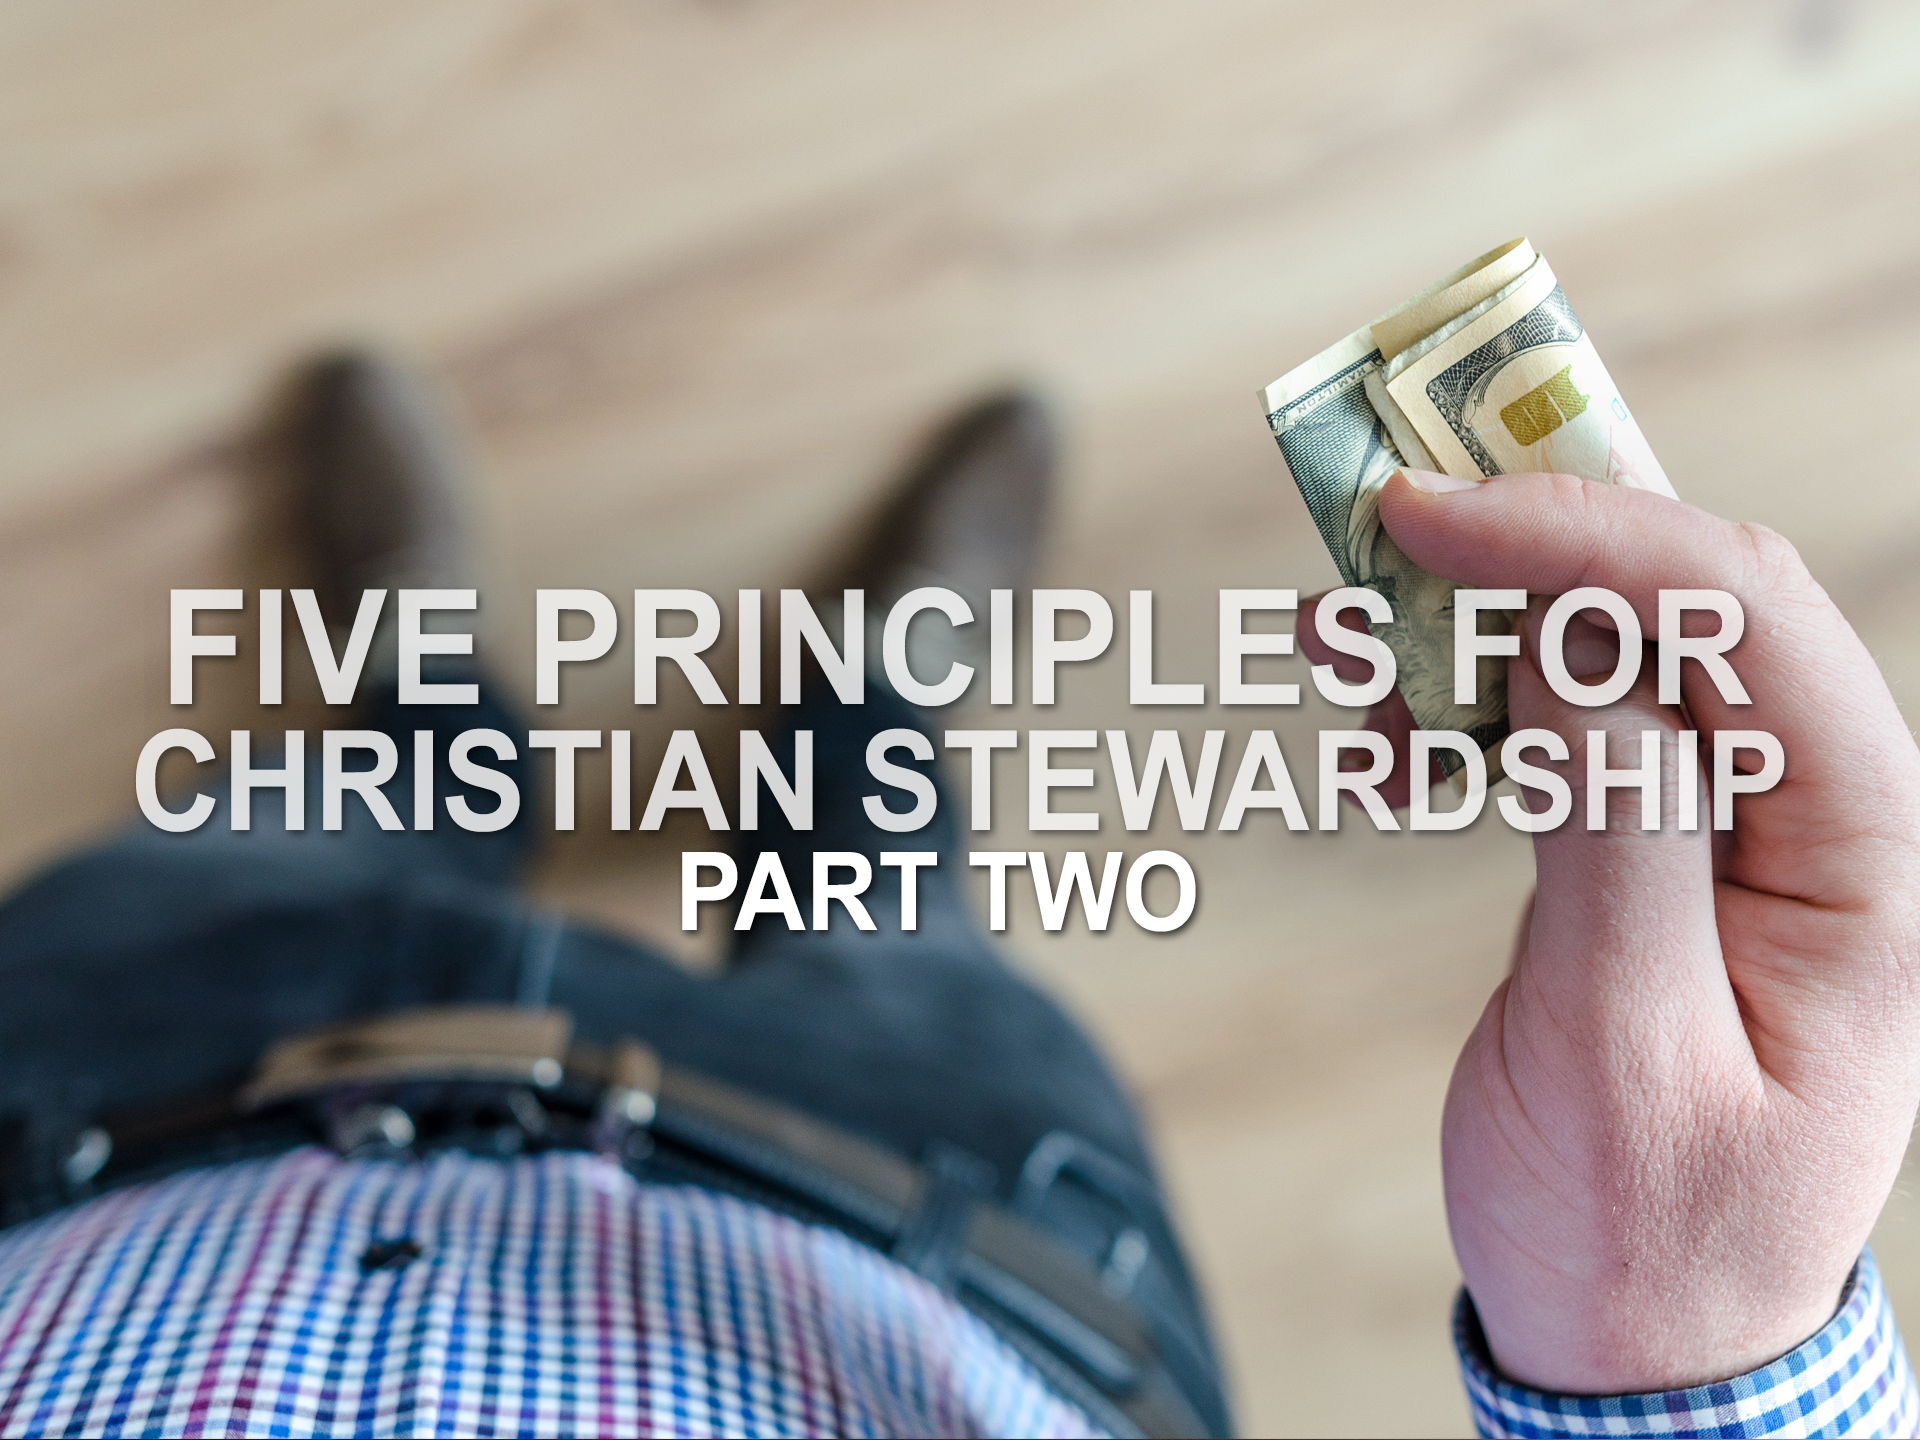 071419 five principles for christian stewardship part two.png